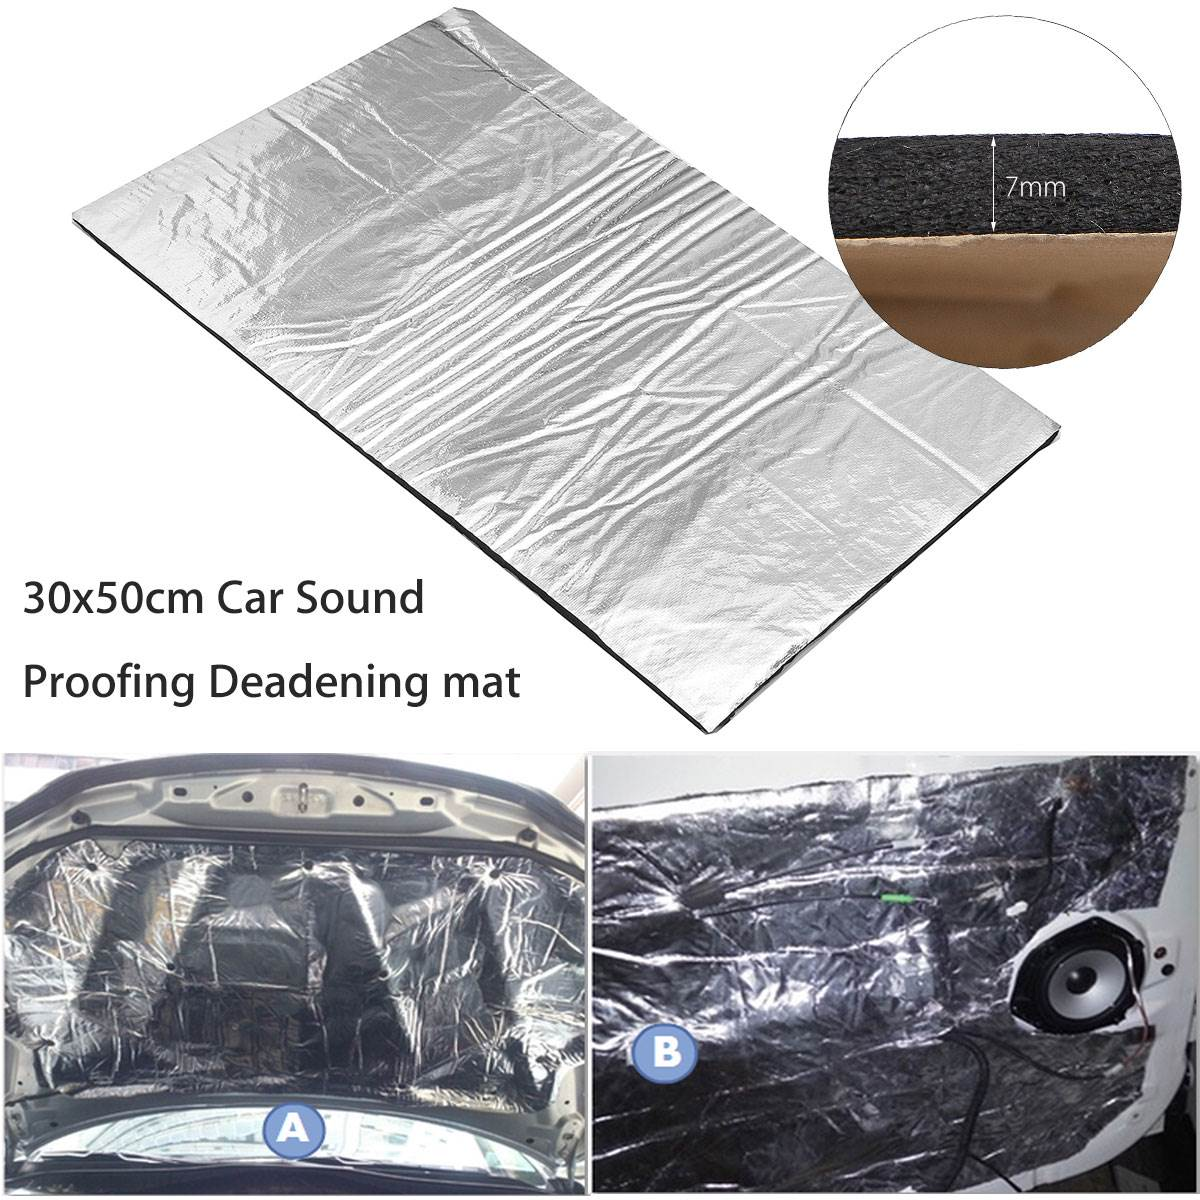 30x50cm car glass fibre sound insulation proofing deadening 7mm closed cell foam in sound heat. Black Bedroom Furniture Sets. Home Design Ideas